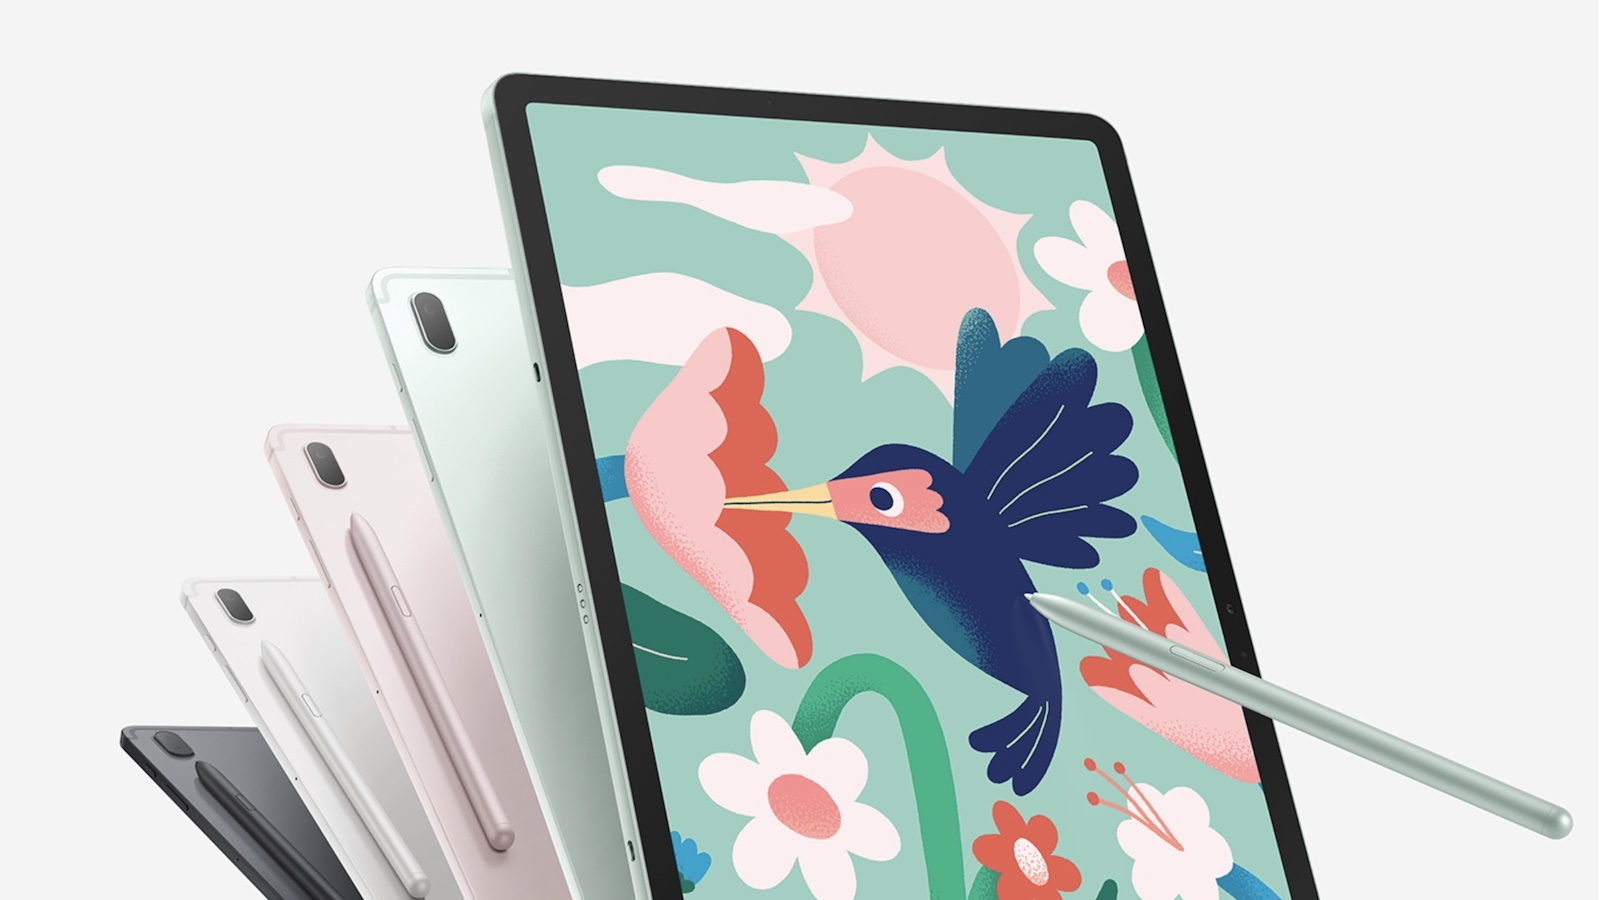 Samsung Galaxy Tab S7 FE 5G tablet enhances productivity with a large 12.4-inch display